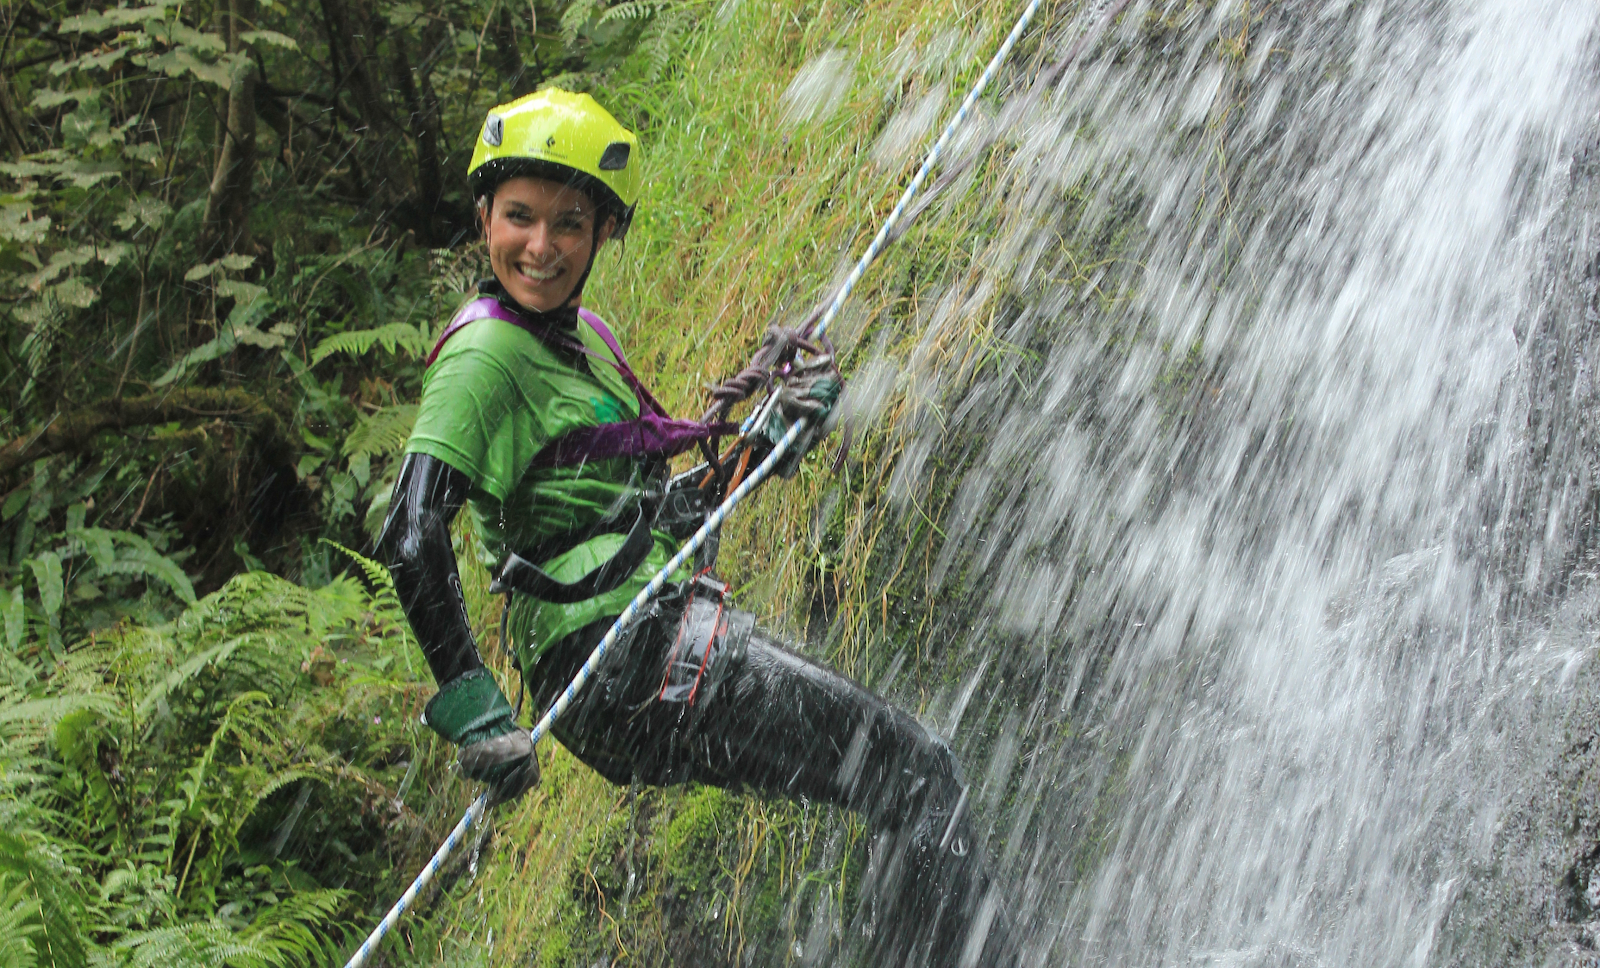 waterfall charity abseil event